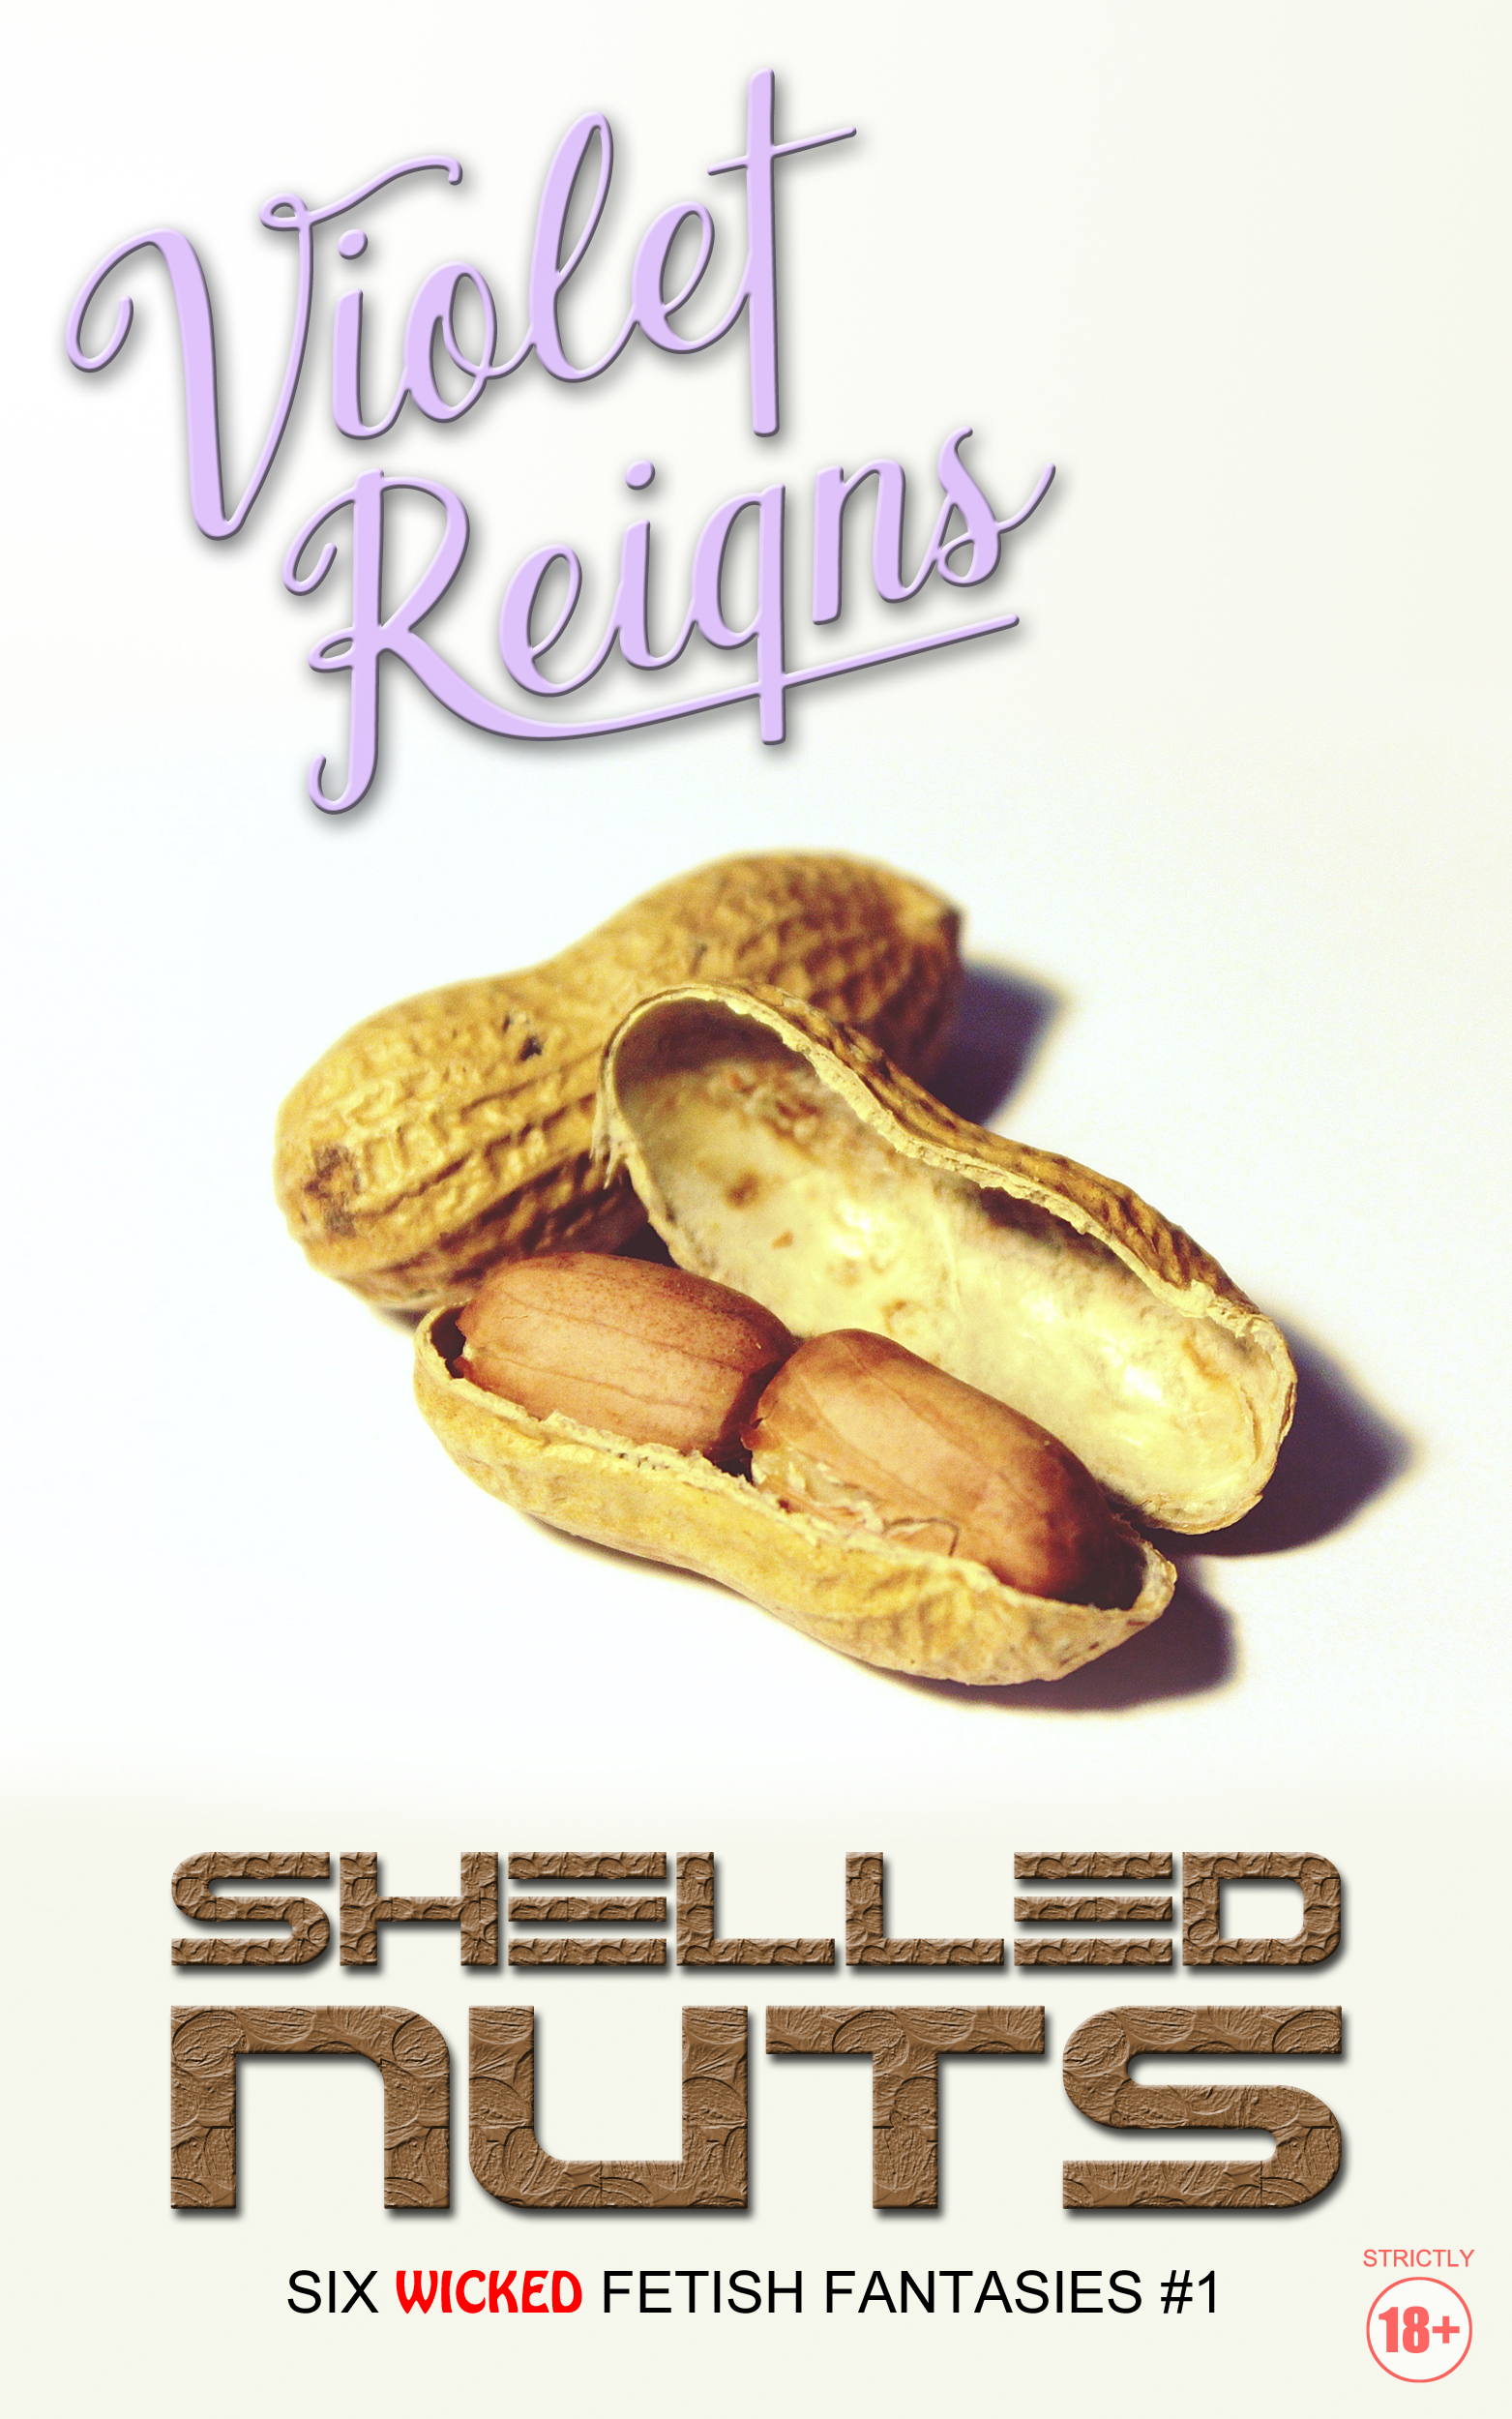 Shelled Nuts (Shelled Nuts #1)